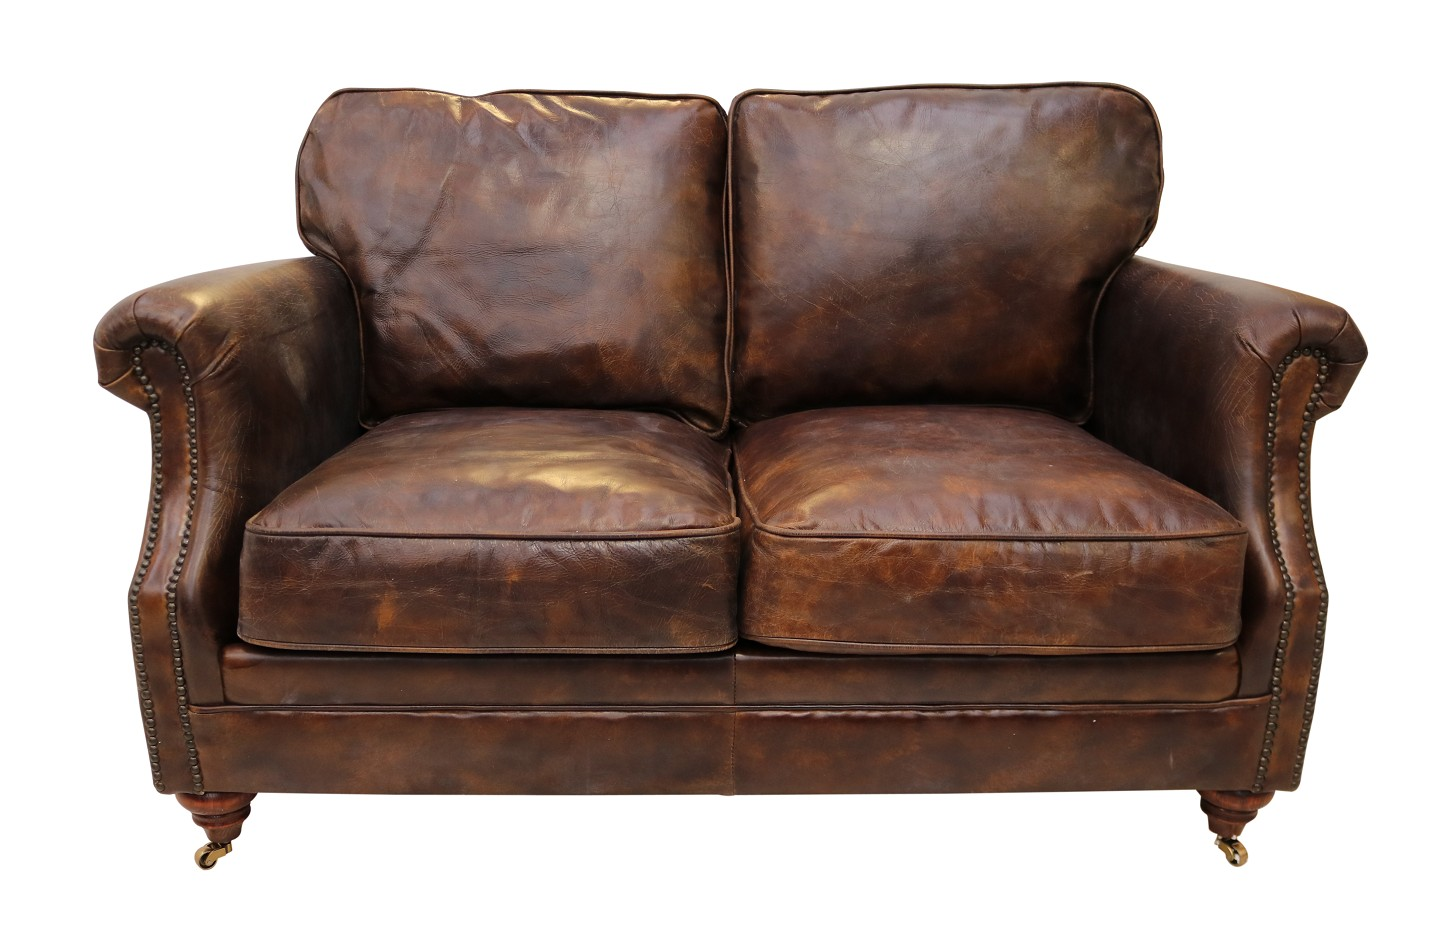 Groovy Luxury Vintage Distressed Leather 2 Seater Settee Sofa Tobacco Brown Bralicious Painted Fabric Chair Ideas Braliciousco